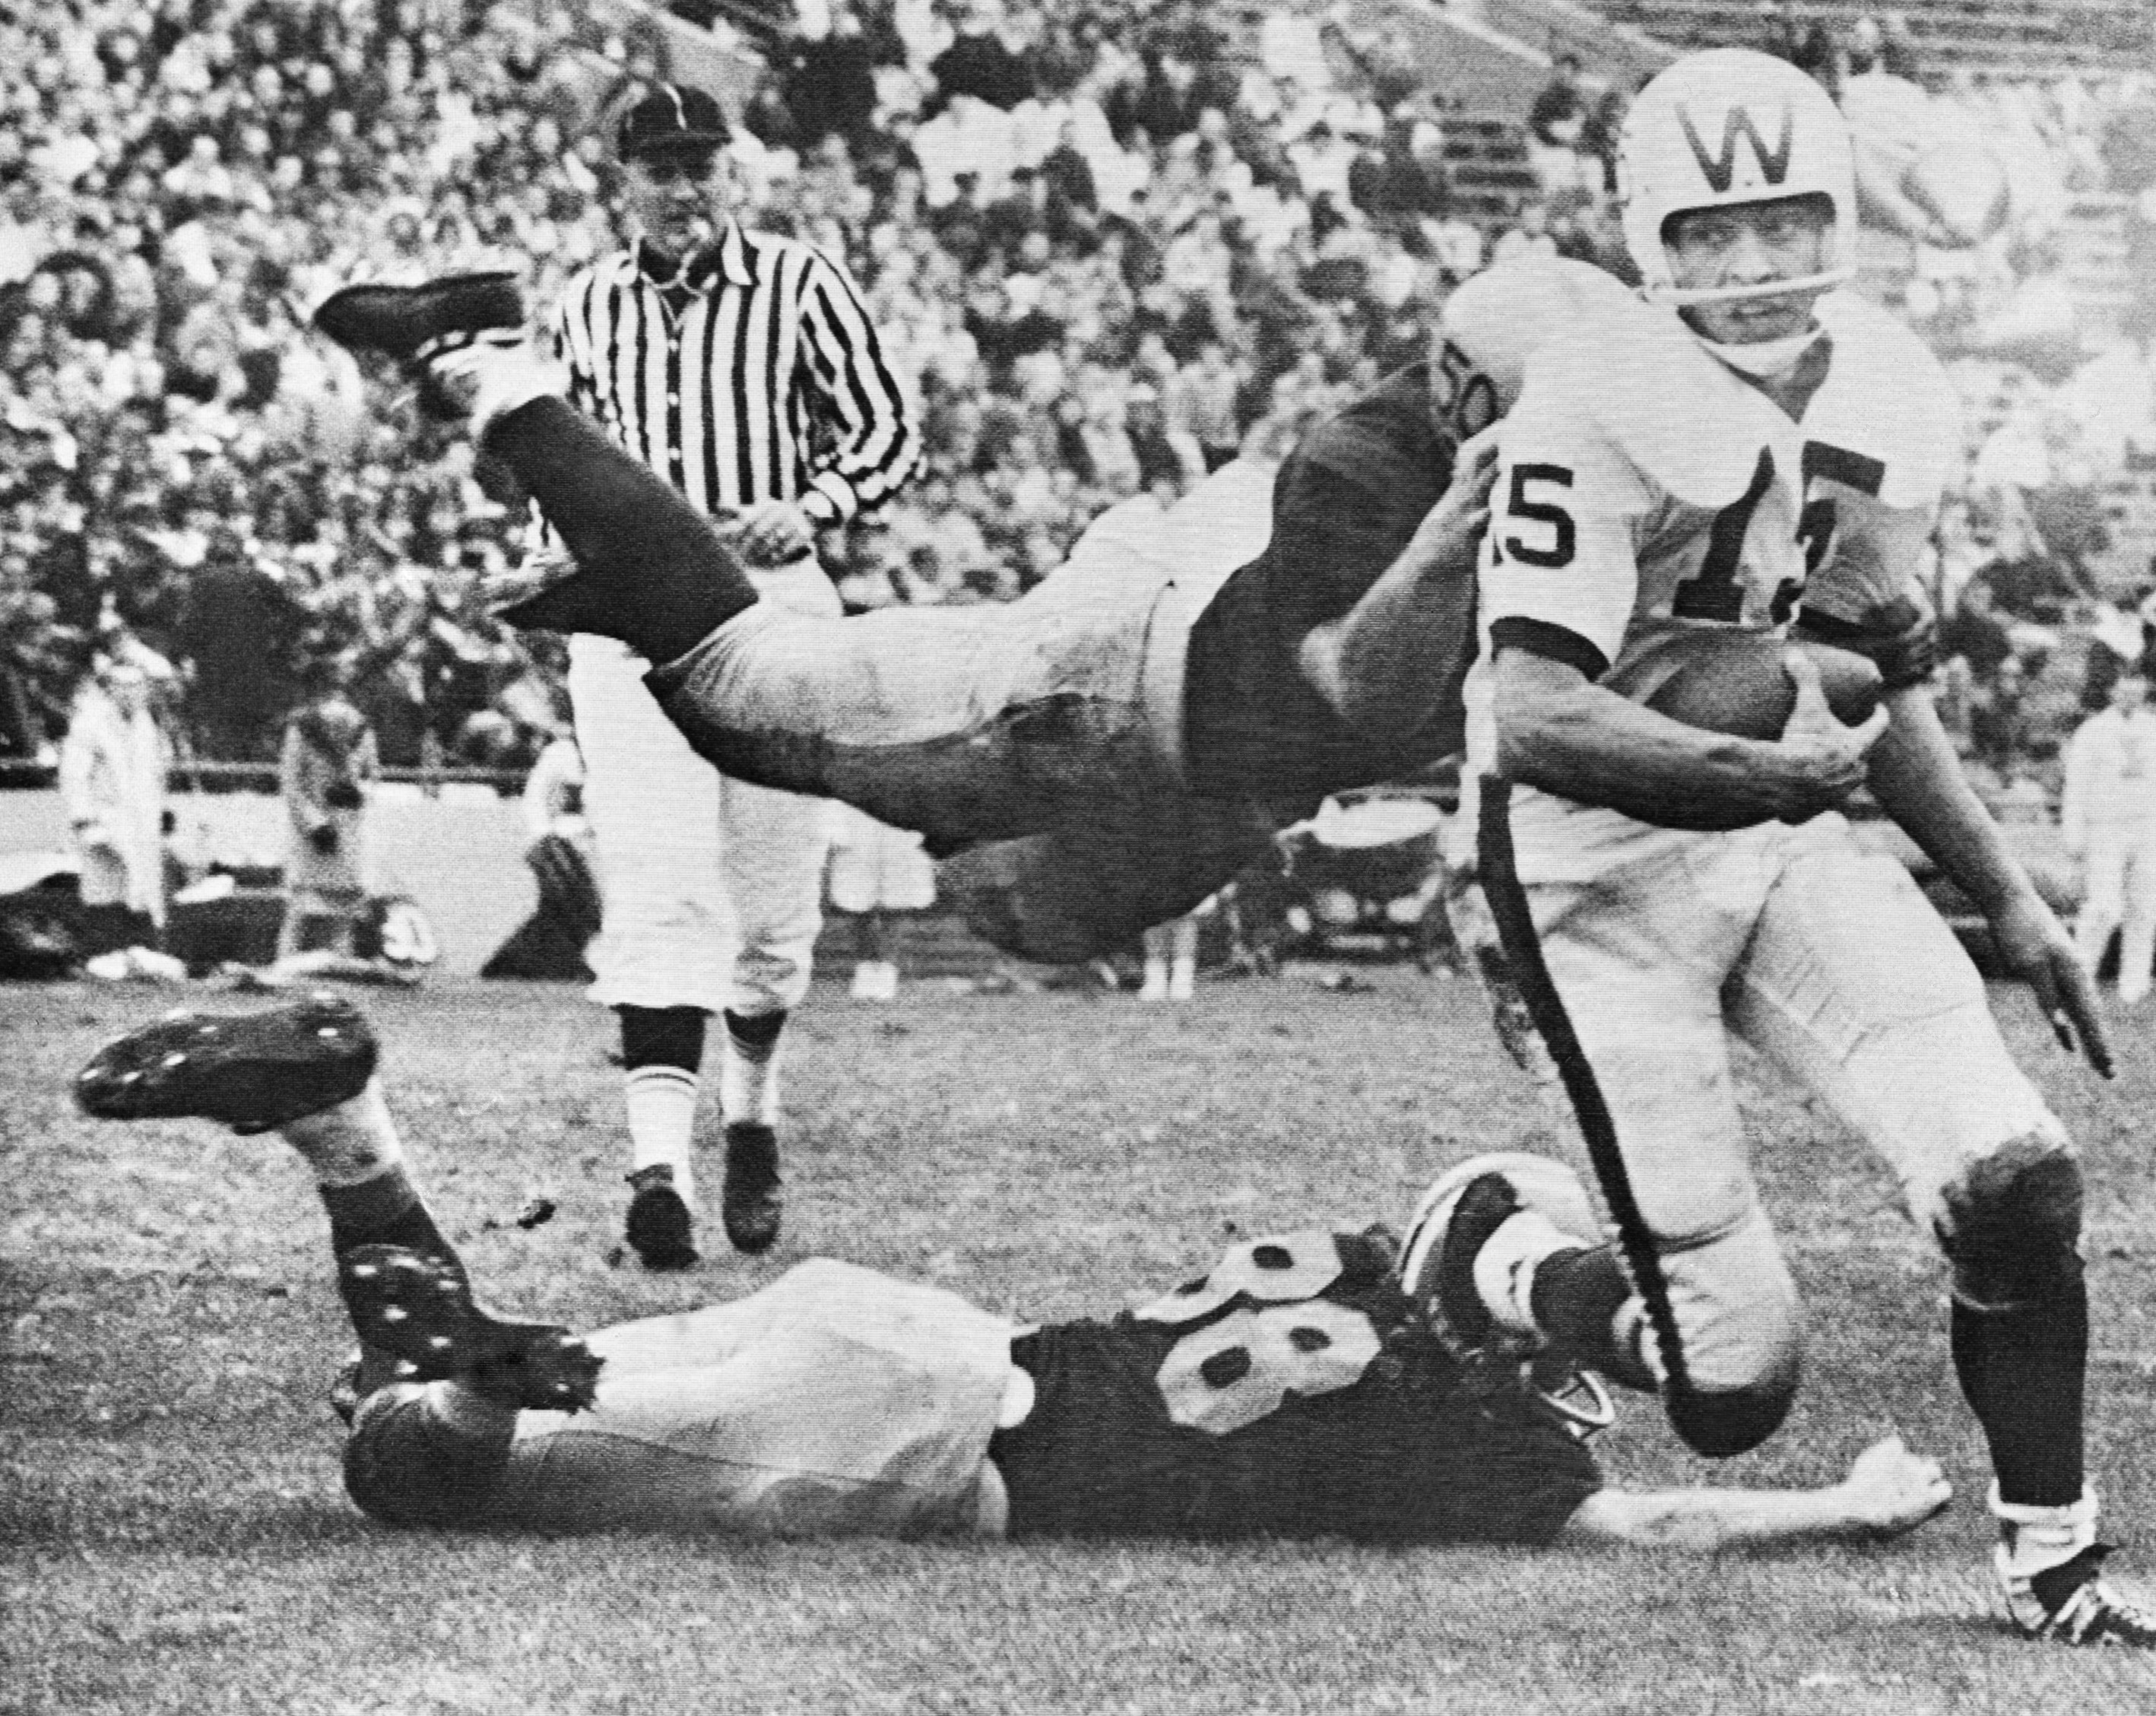 An flying Illinois tackler hits the head of Wisconsin quarterback Ron Vanderkelen (15) and another Illinois man grabs him by the feet as they try to stop him as he runs for a first down in the second quarter, Nov. 17, 1962, Champaign, Ill. Illinois center Dick Butkus is the flying tackler and Illinois and Rich Callaghan is the ground man. (AP Photo/Larry Stoddard)